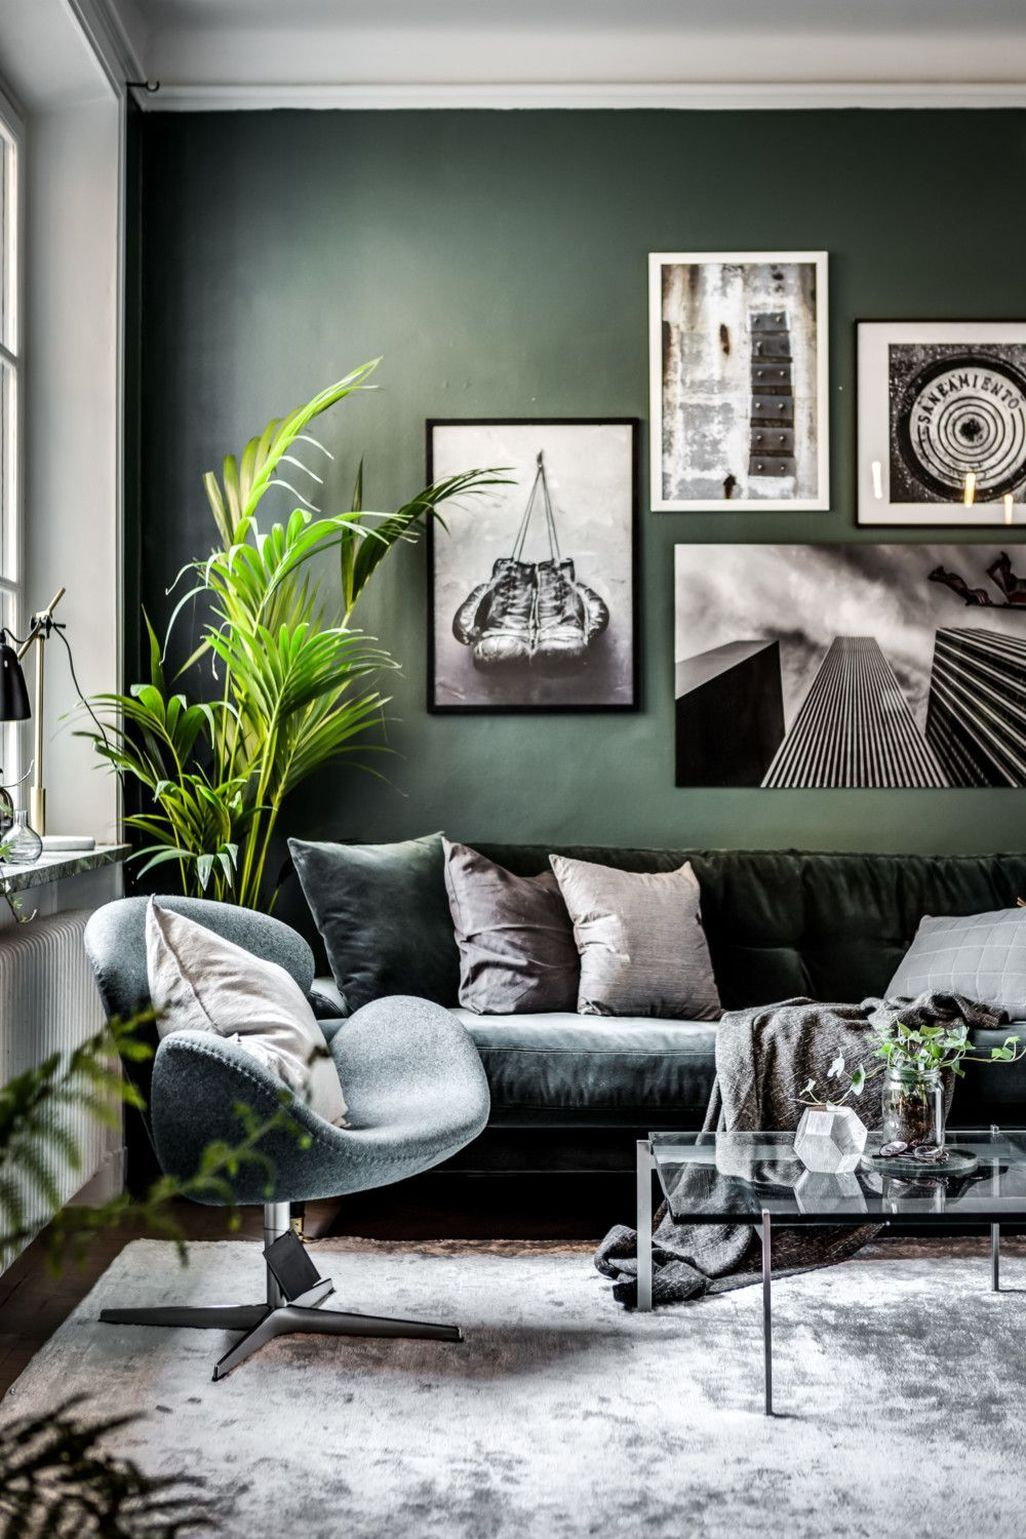 Living Room Design Green: 45 Cozy Green Livingroom Ideas